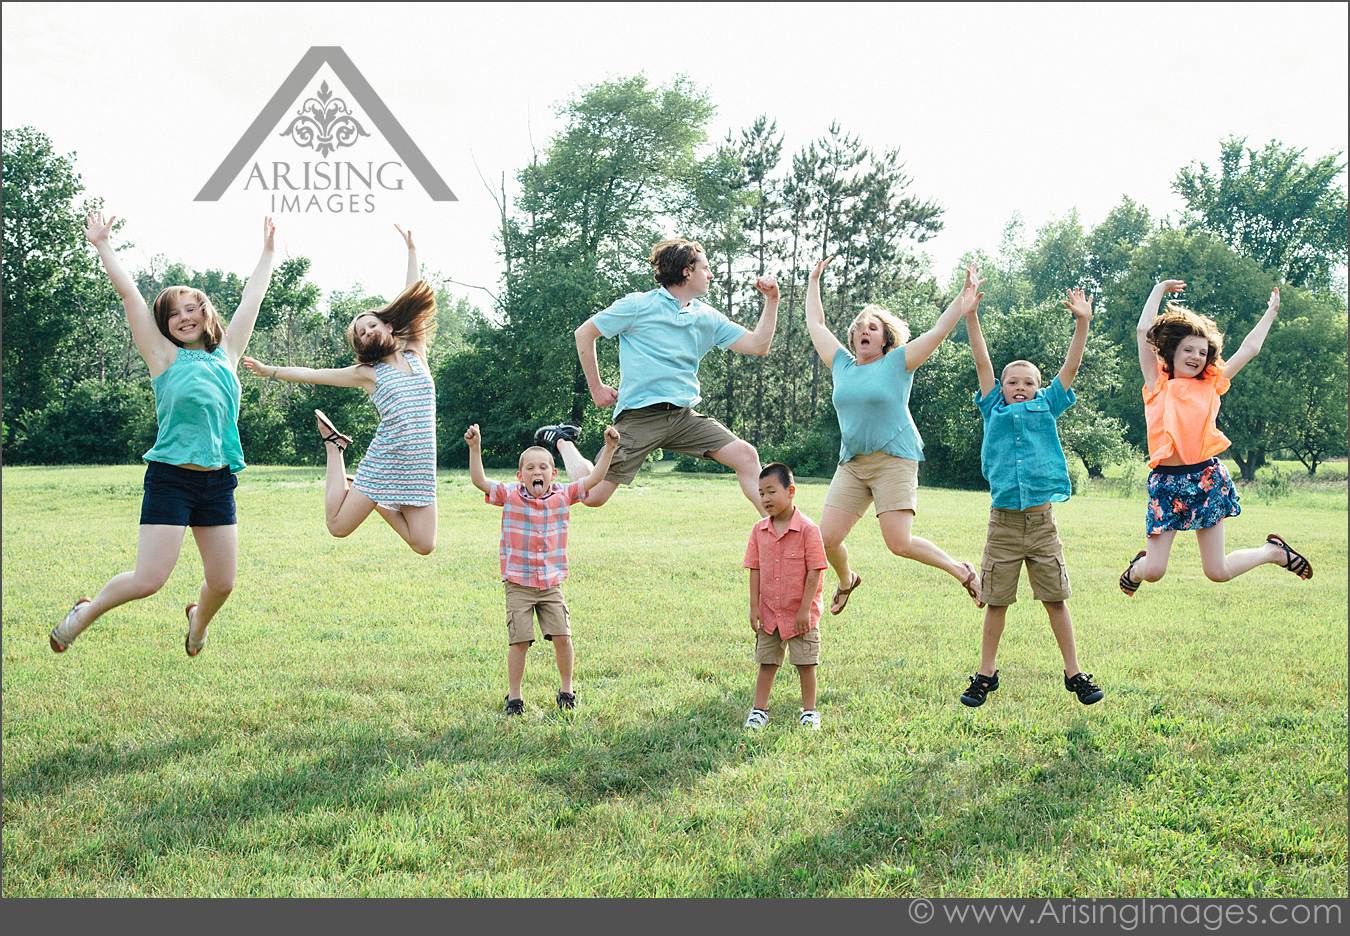 Family Photographer Archives - Page 10 of 15 - Arising Images